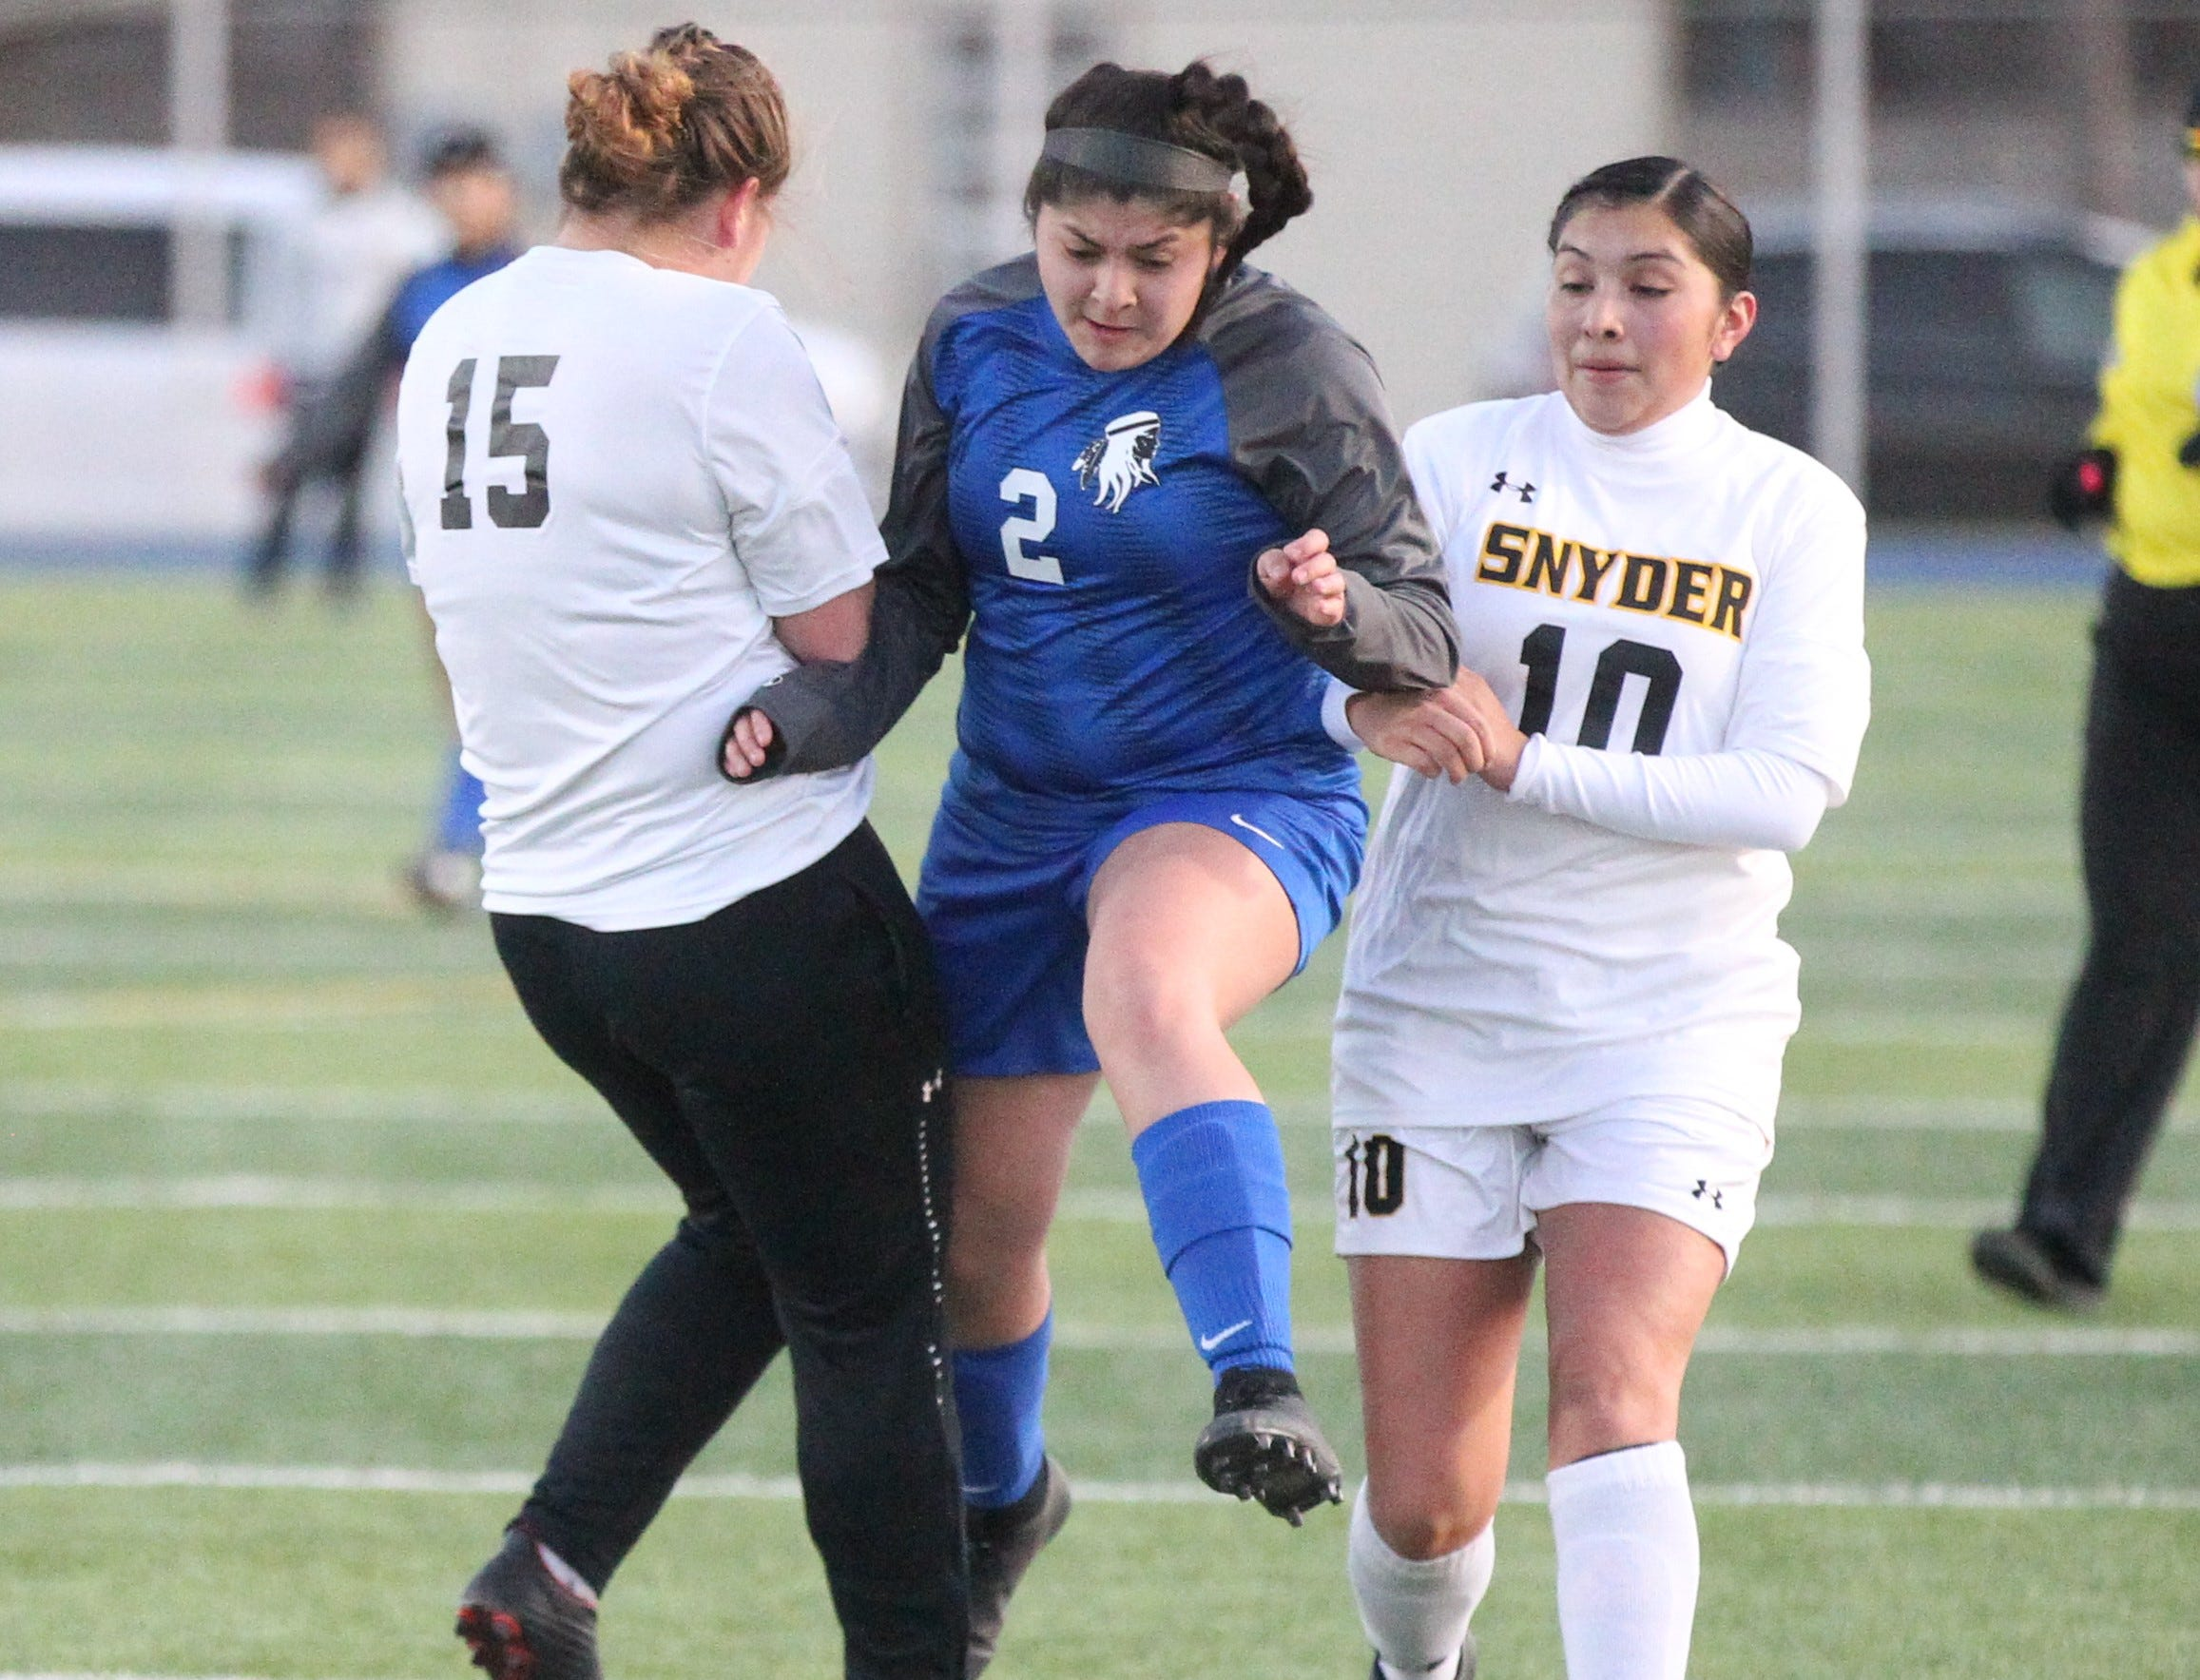 Lake View's Abigail Borrego (2) fights for the ball in a District 4-4A soccer match against Snyder at Old Bobcat Stadium on Tuesday, March 5, 2019.